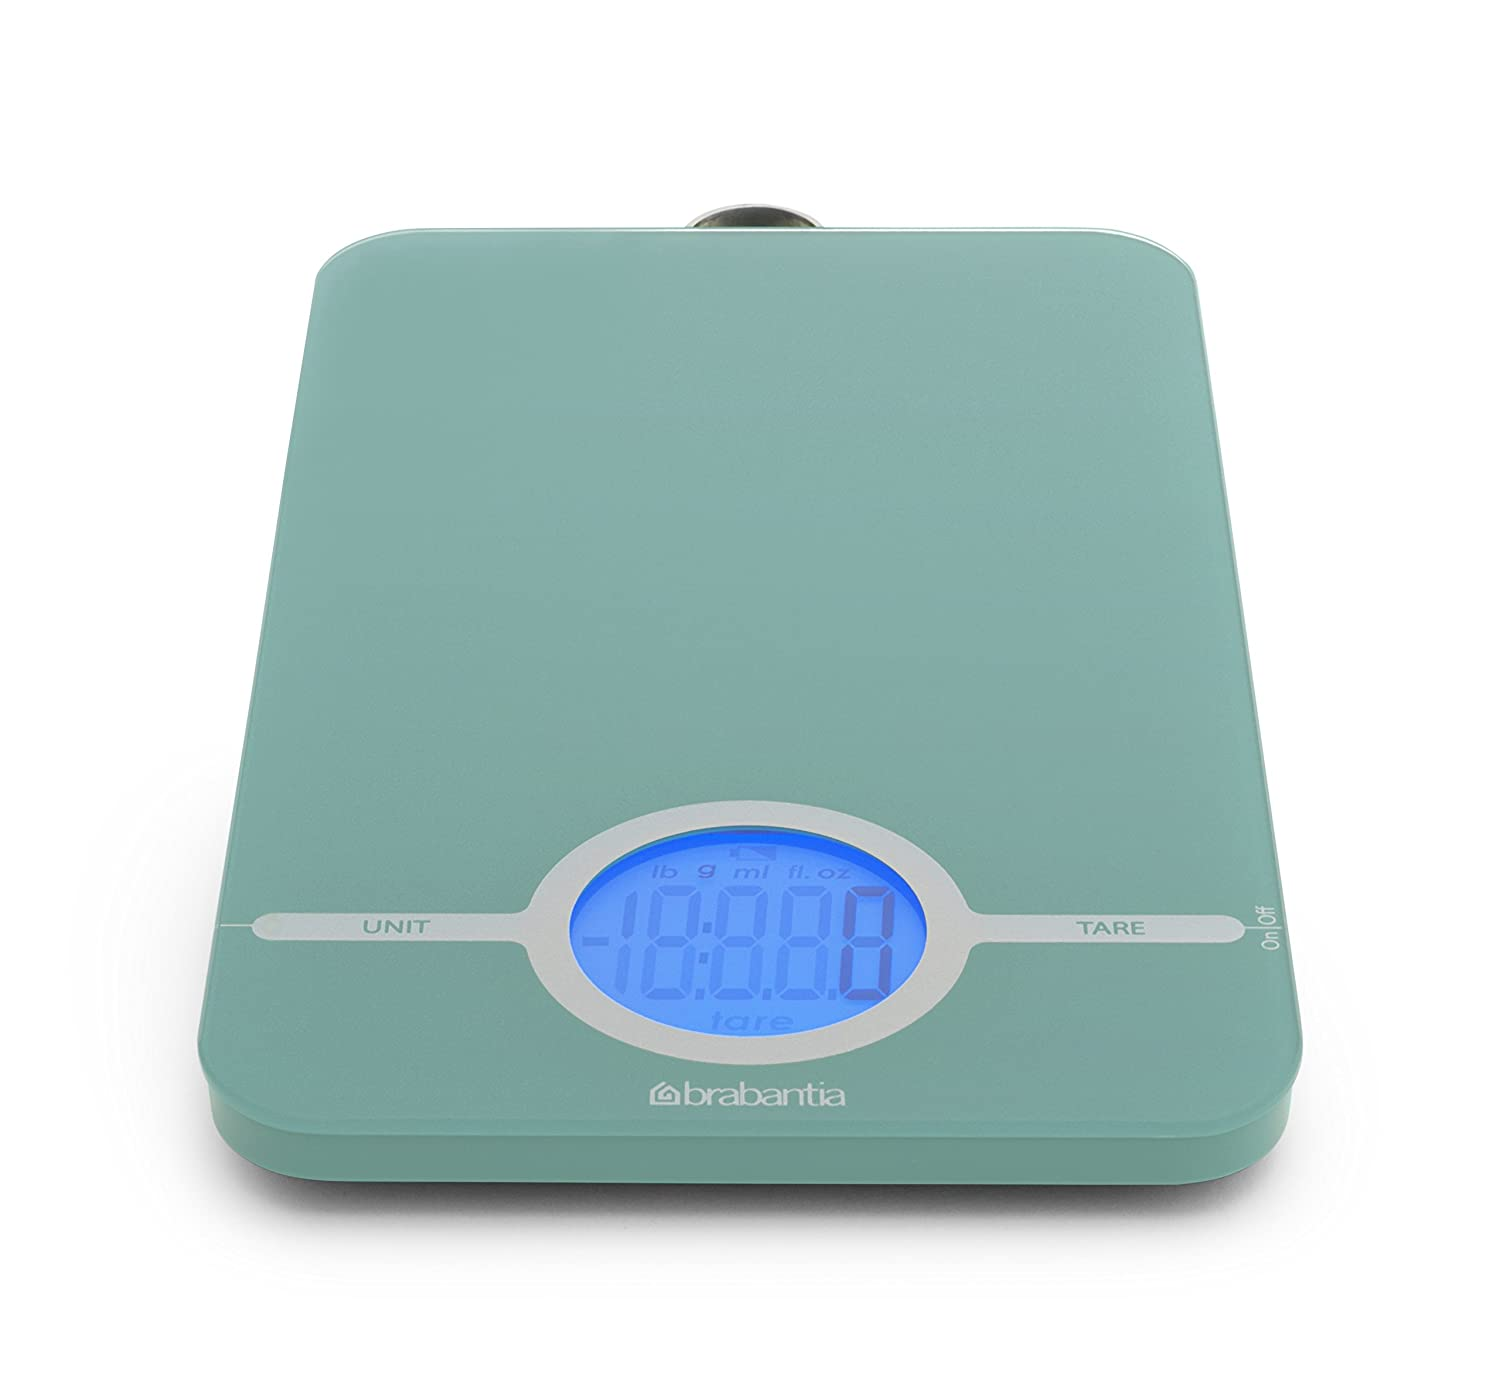 Brabantia 480720 Essential Electronic Kitchen Scales